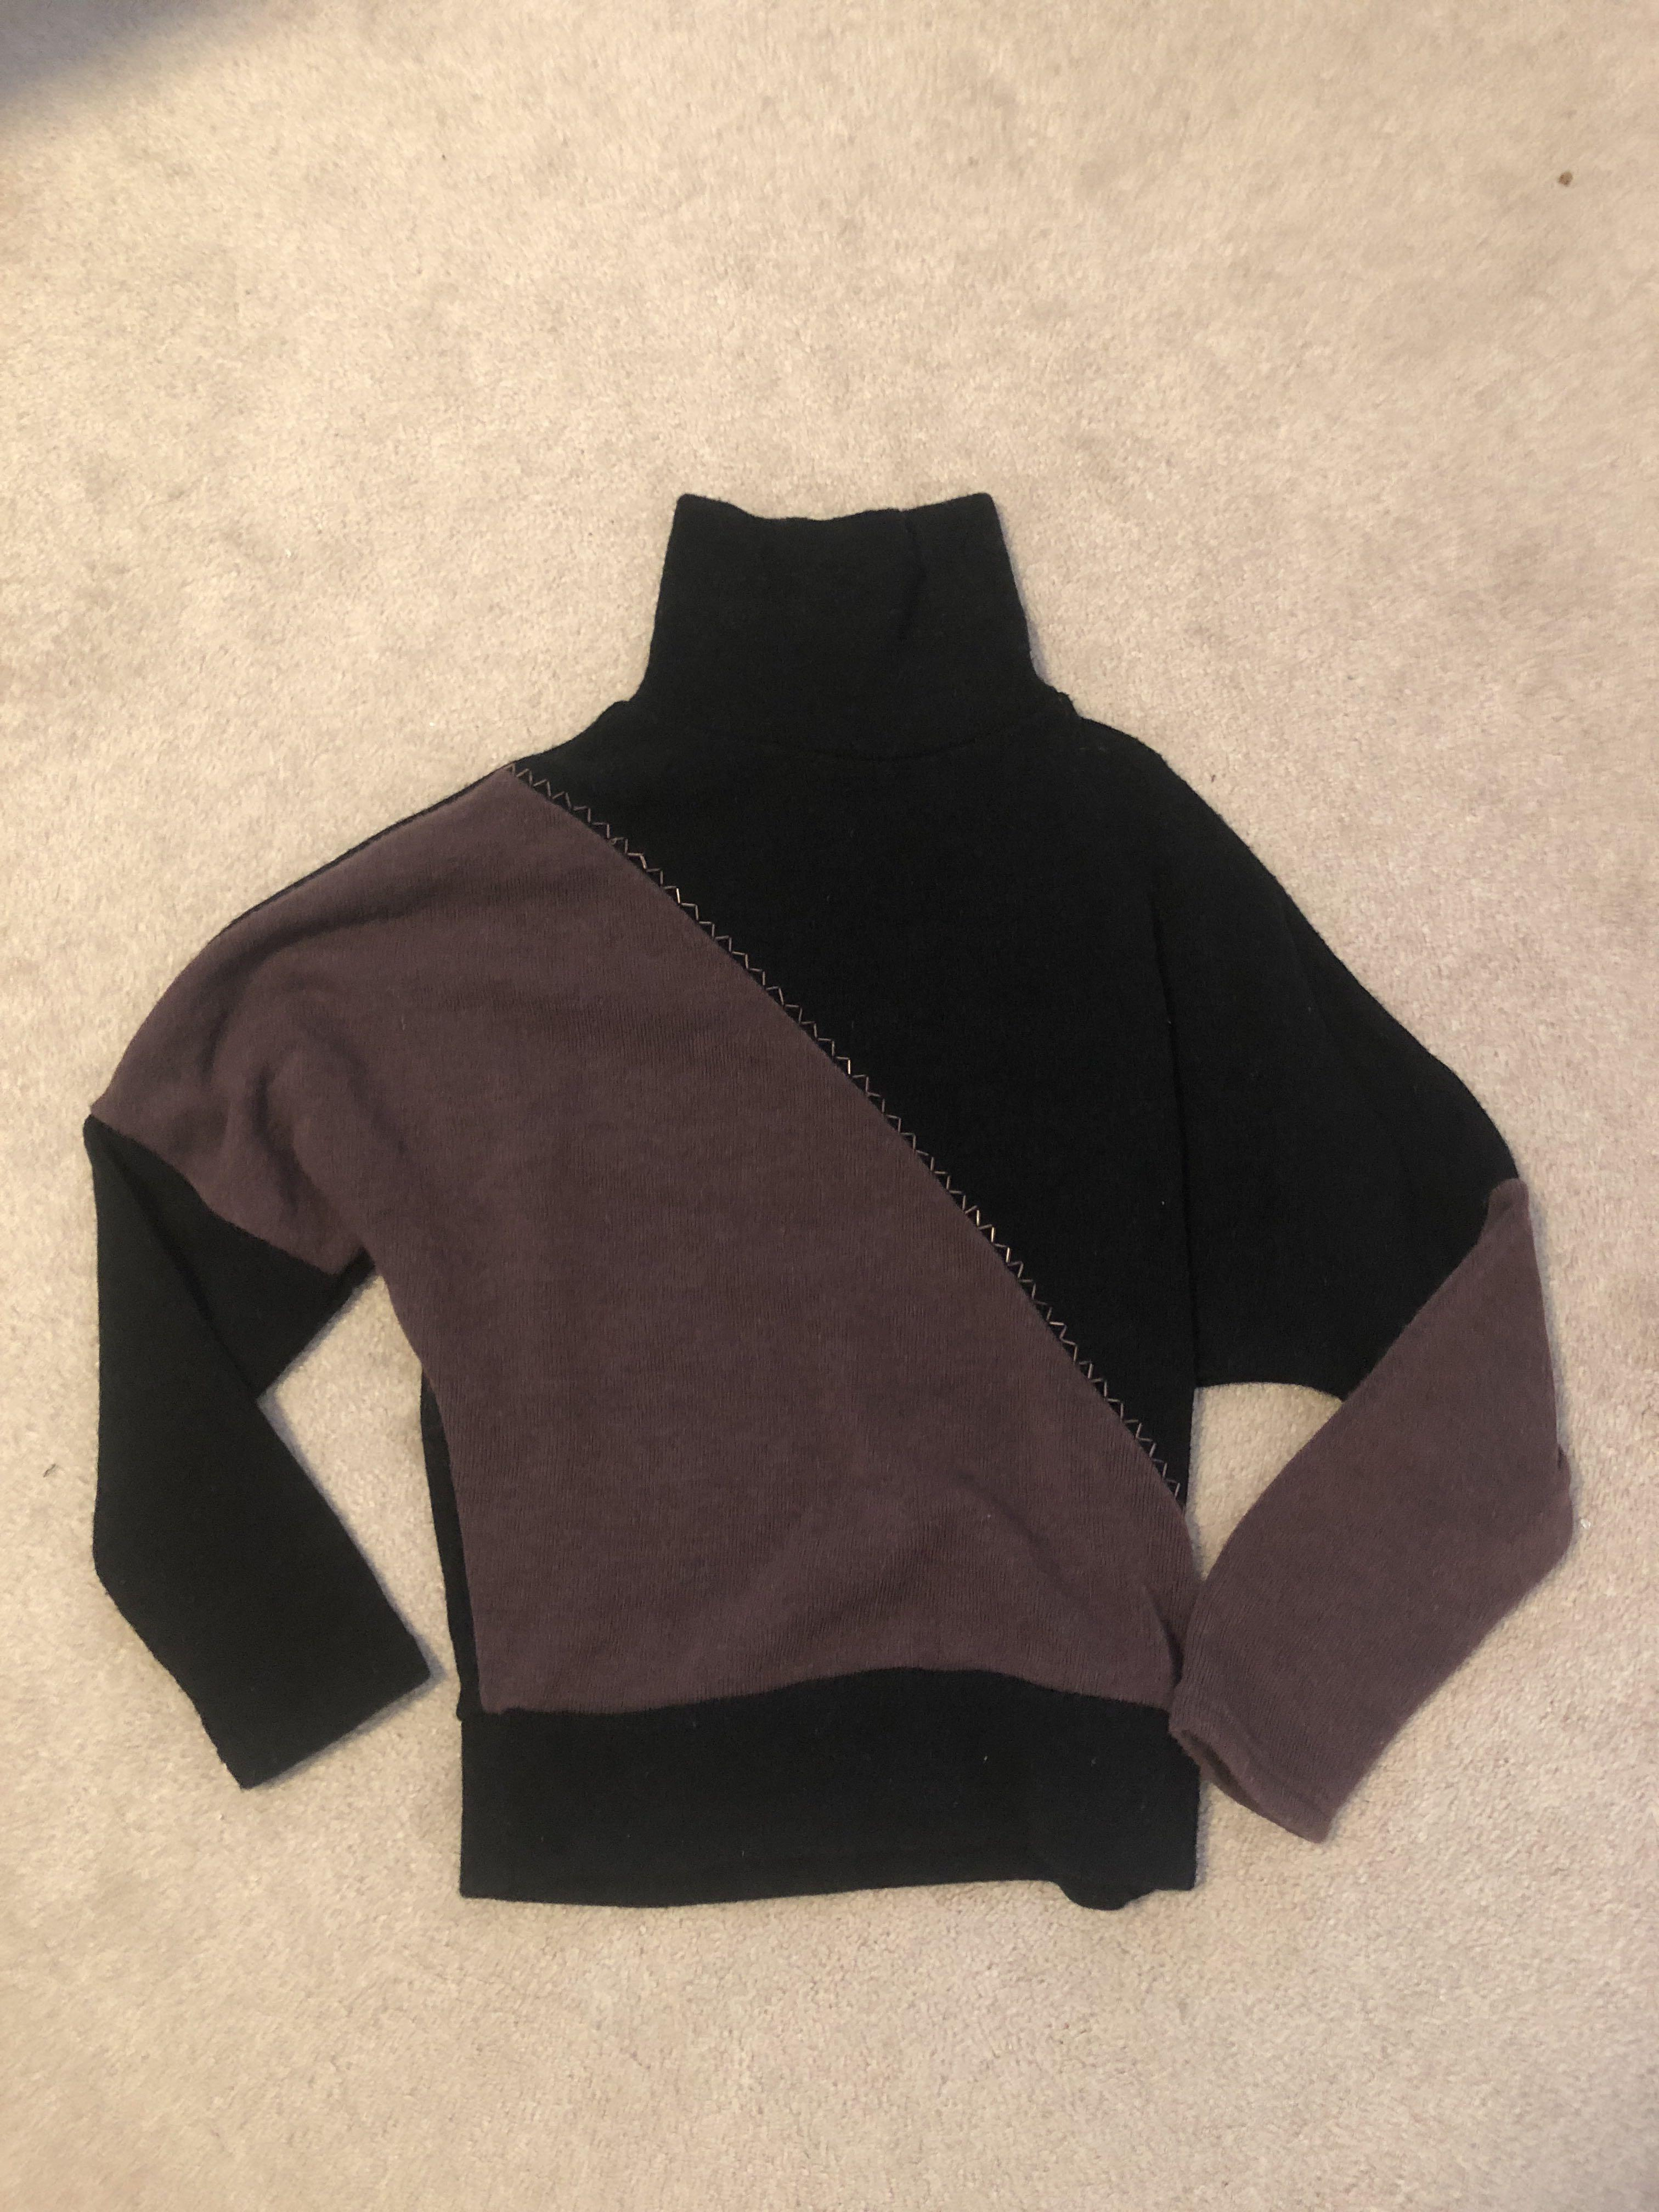 Two Toned Sweater | Size S/M